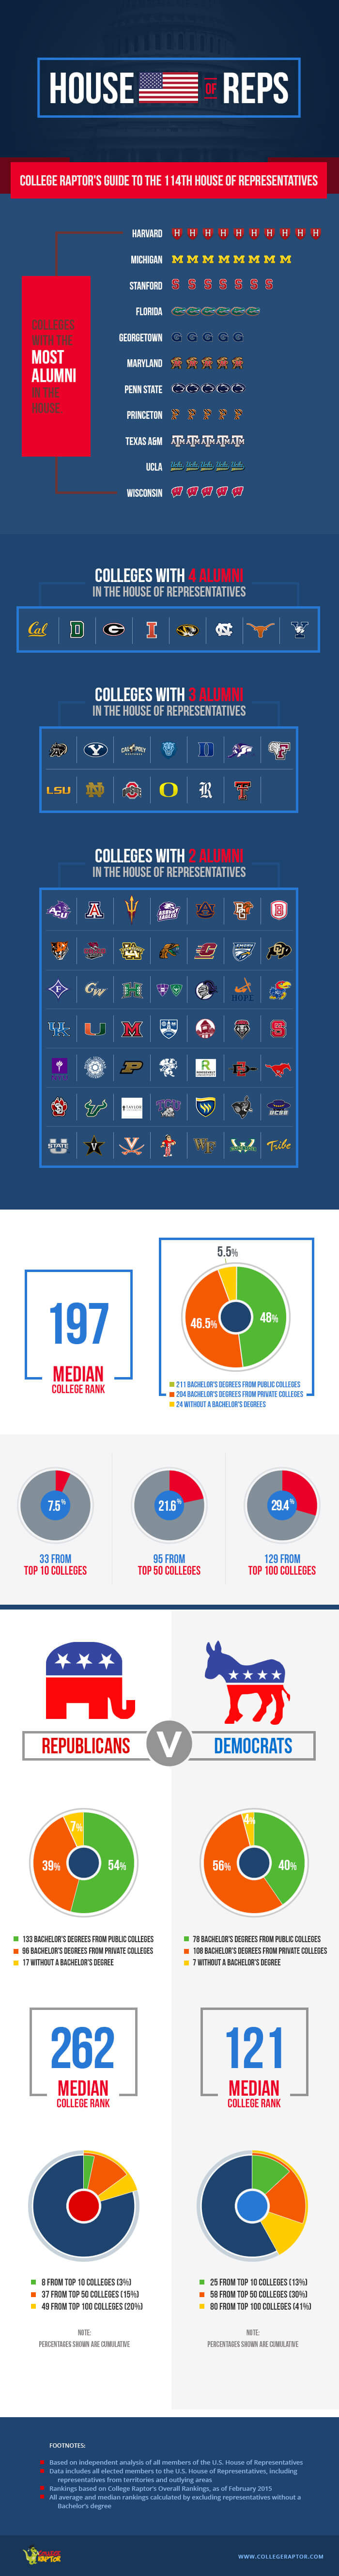 Infographic showing various statistics about the colleges attended by members of the 114th U.S. House of Representatives.